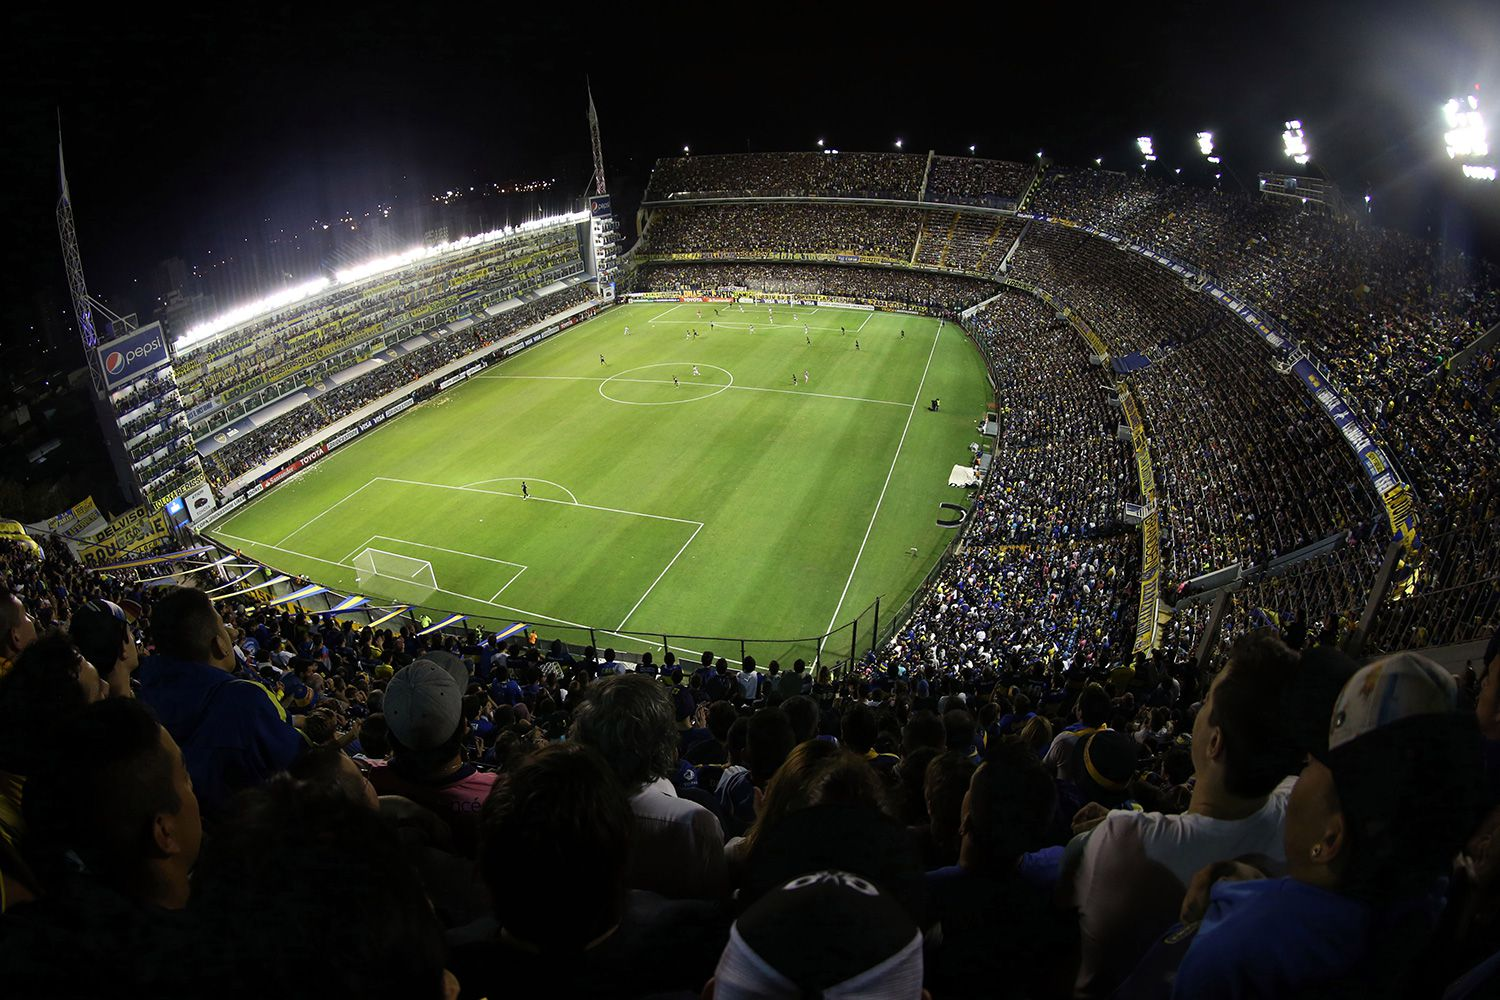 Tickets To A Boca Juniors Home Game In Buenos Aires